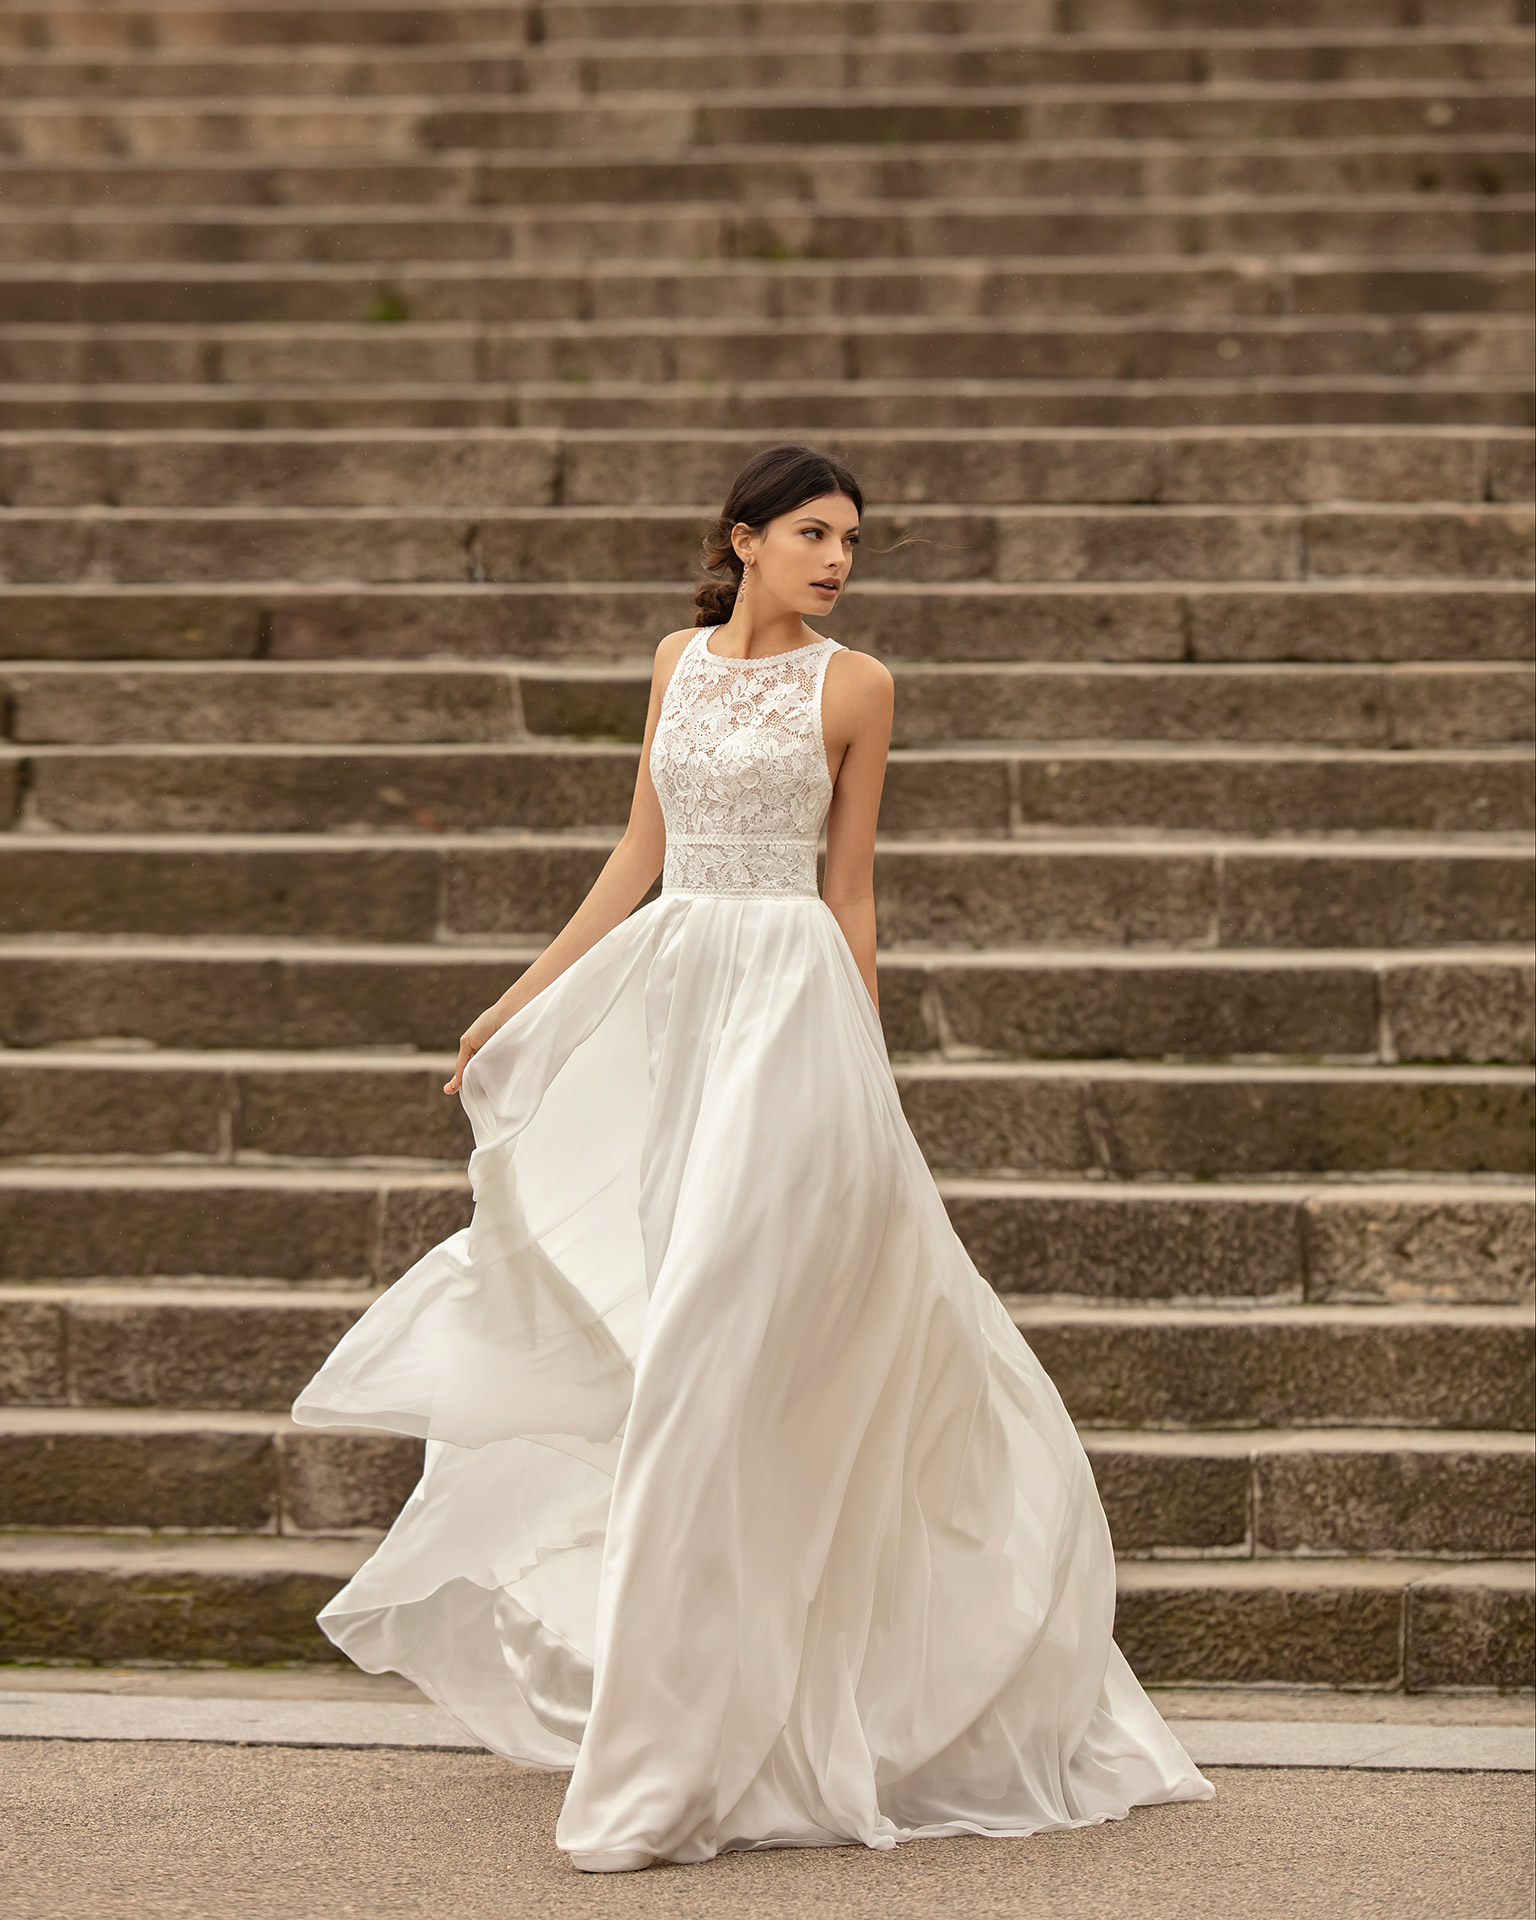 Lightweight chiffon and corded lace wedding dress with back with crossover straps. 2020 ALMANOVIA Collection.